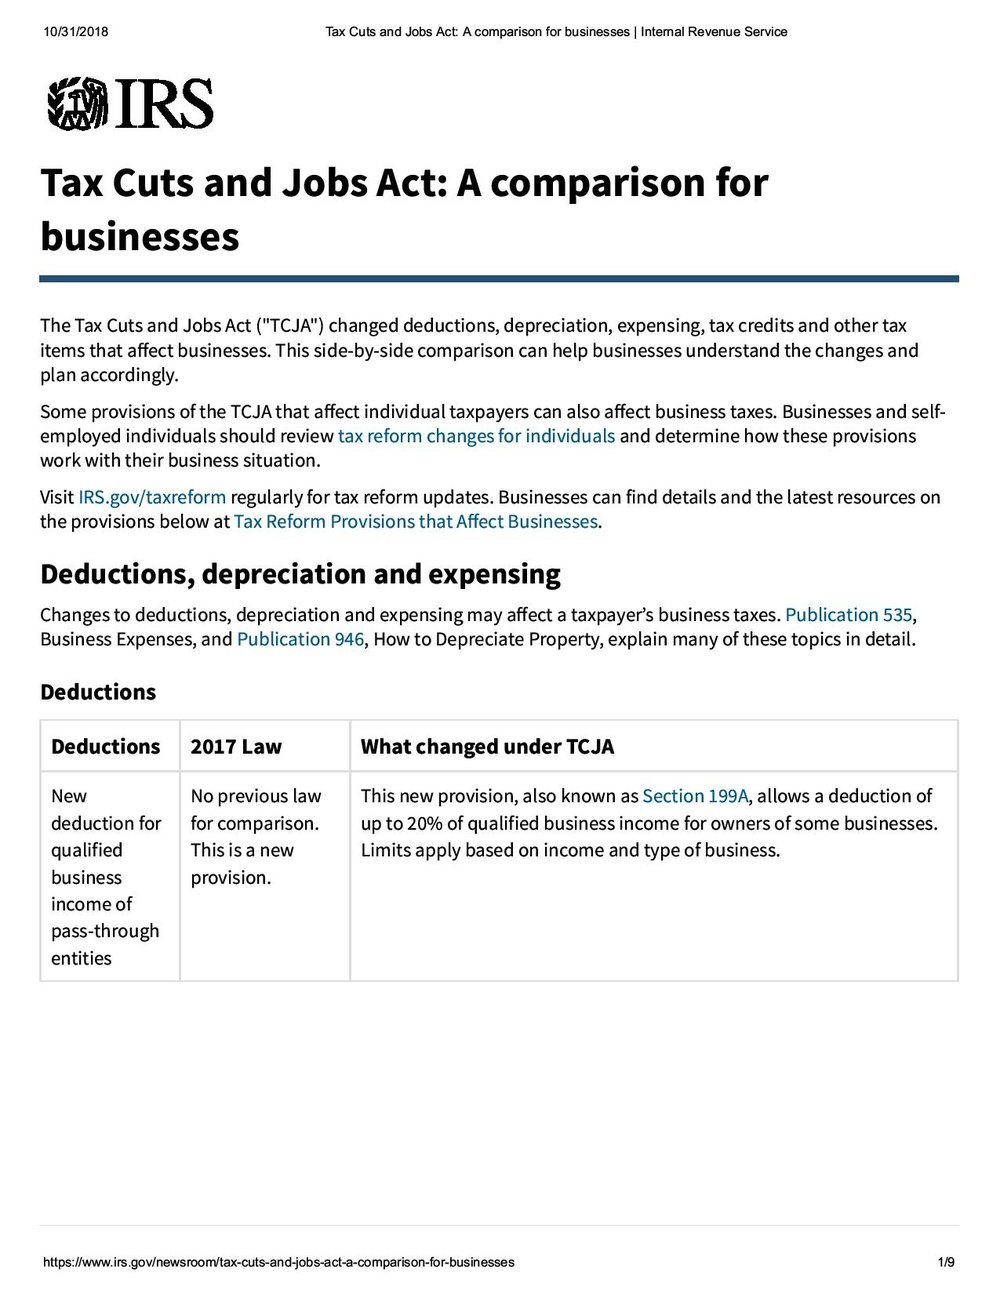 IRS Summary of Key Business Tax Law Changes in the Tax Cuts and Jobs Act posted 1 Nov 2018-page-001.jpg